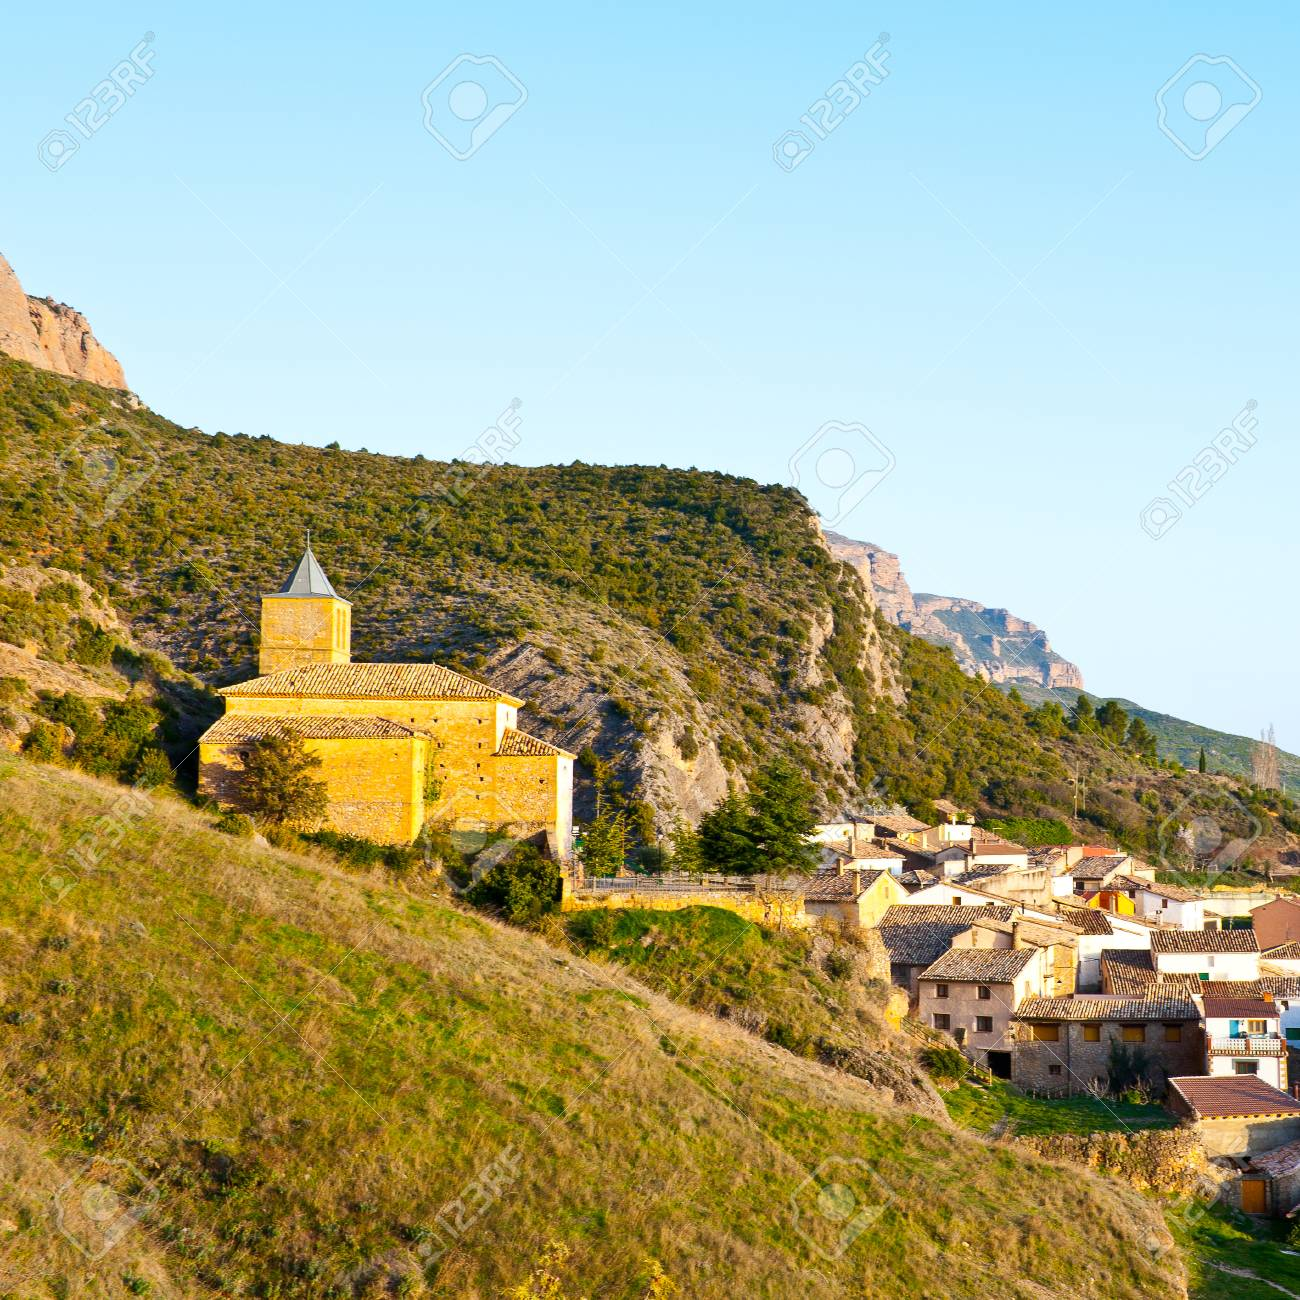 Rocks In Spanish Part - 25: Spanish Medieval Village At The Foot Of The Rocks In The Pyrenees Stock  Photo - 42659410